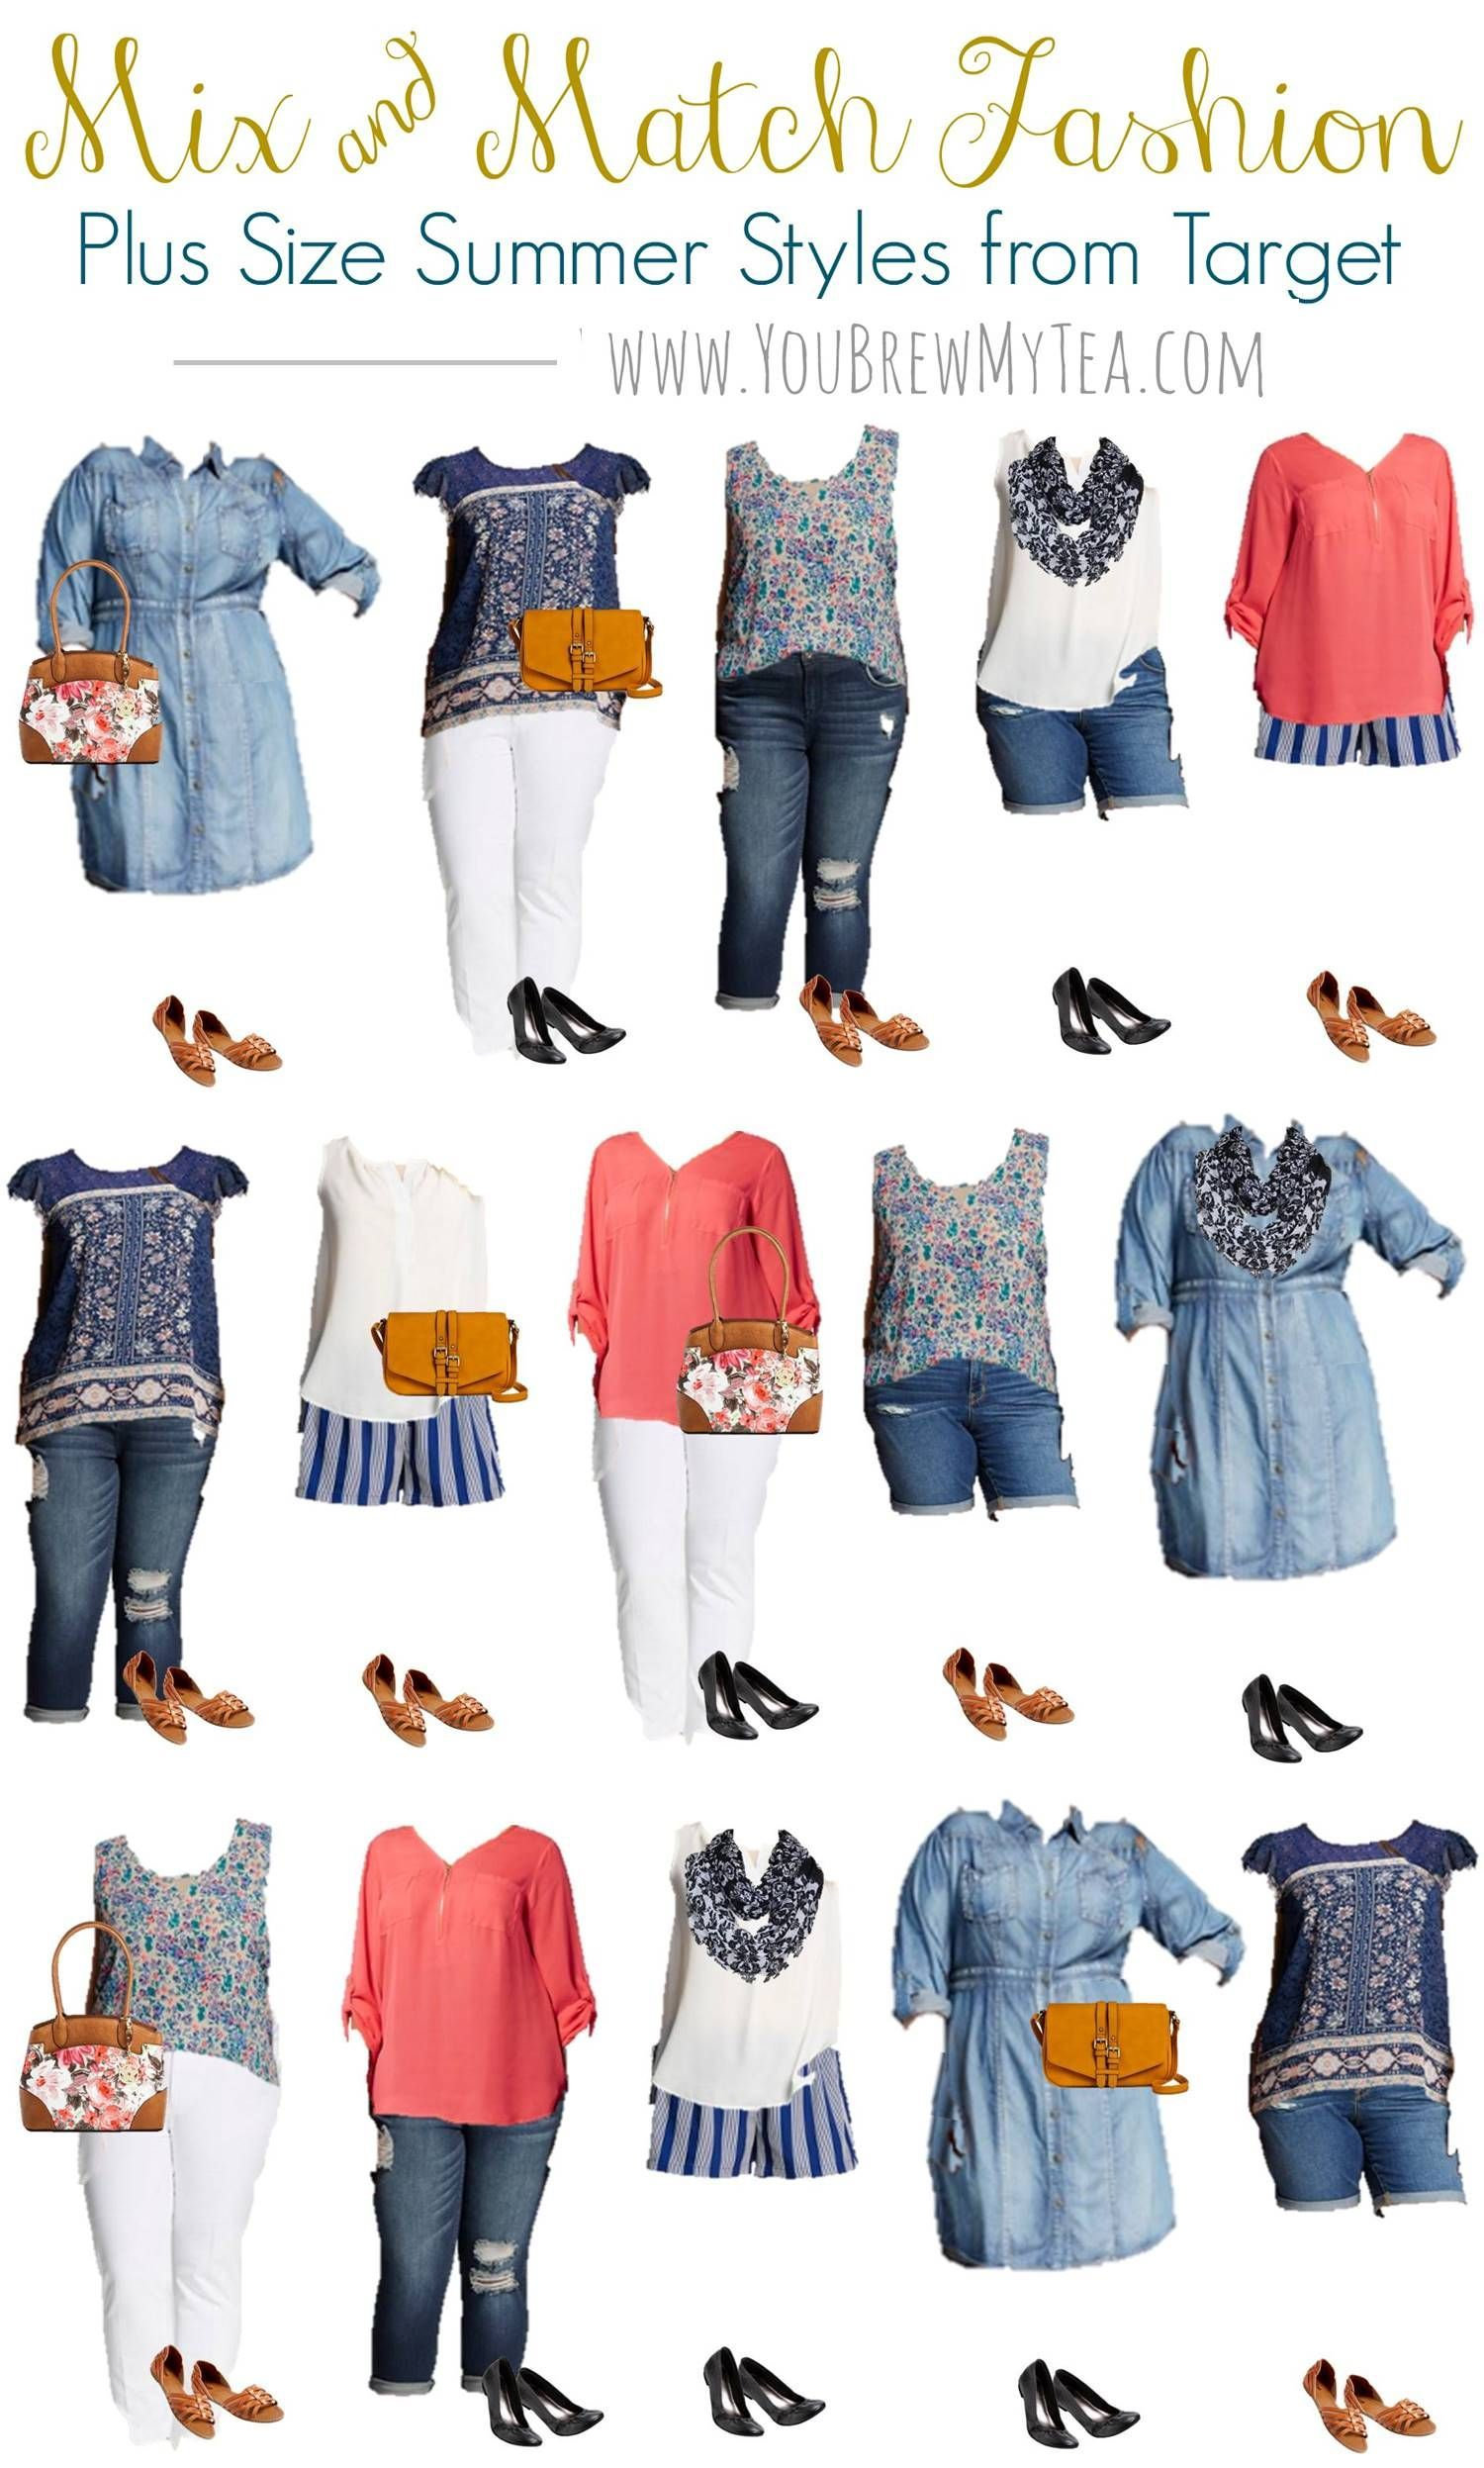 141c106478b8 Don t miss our great list of Affordable Plus Size Fashions For Spring! Great  styles to mix and match that flatter and are budget friendly!